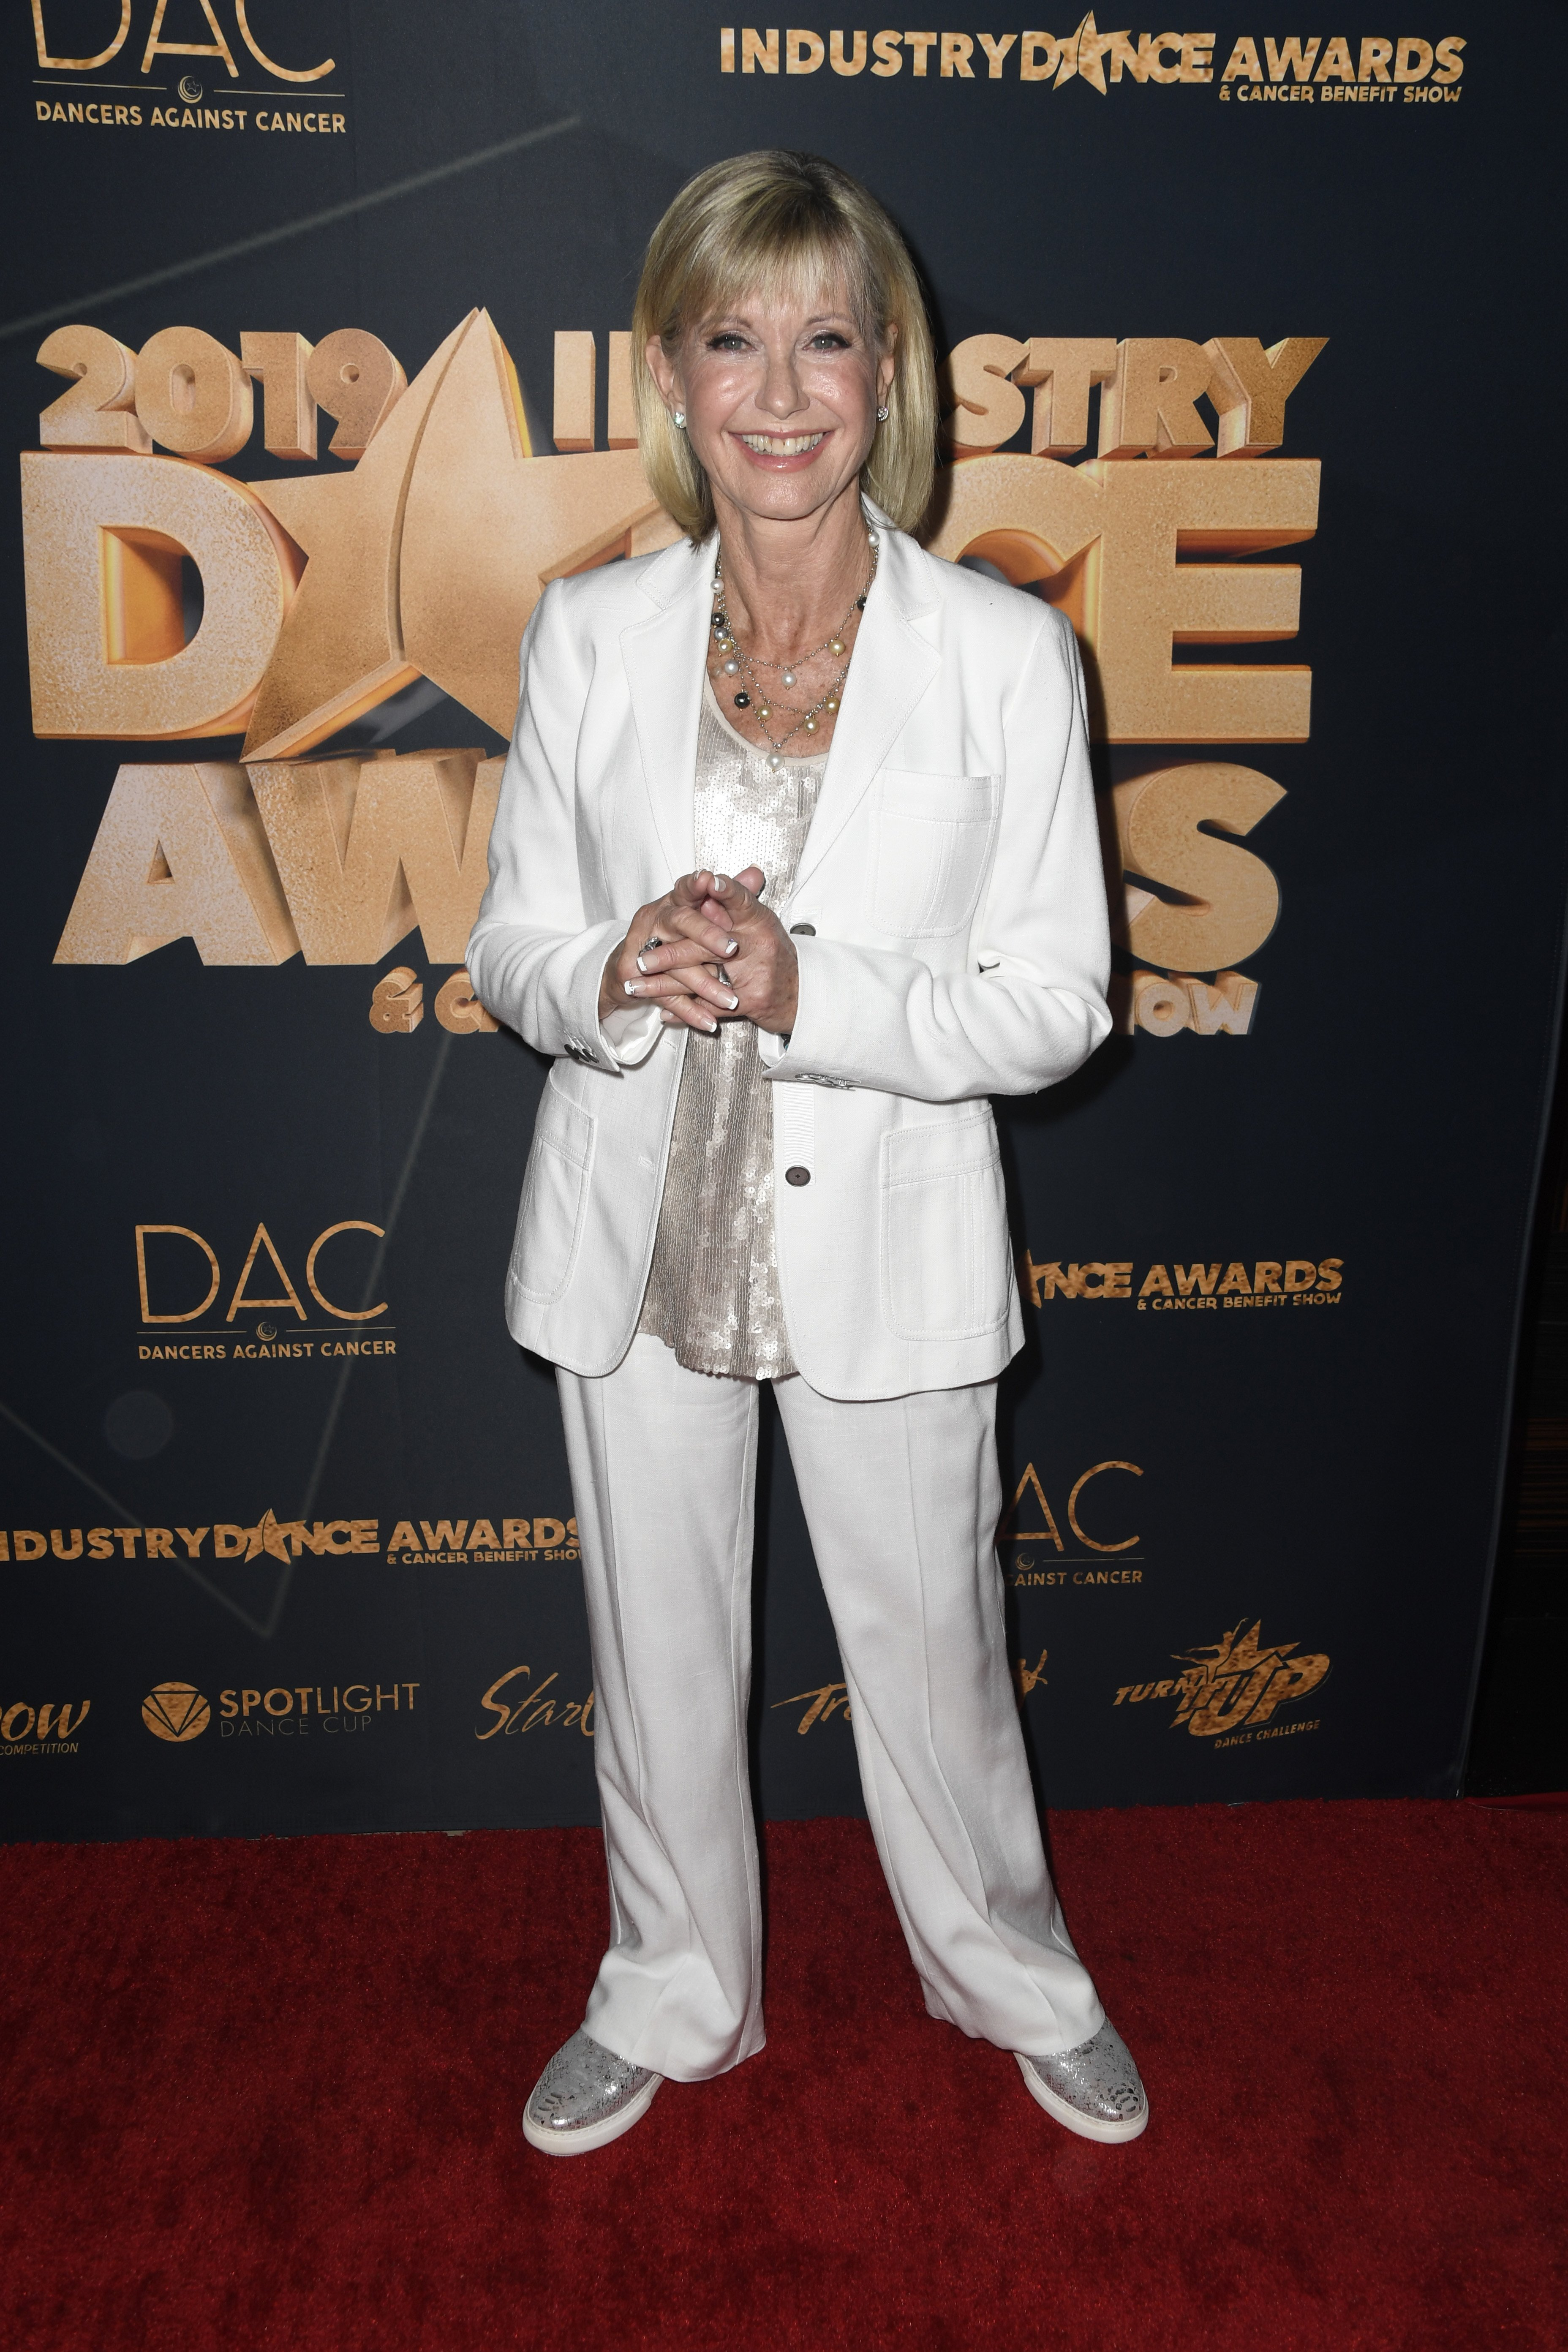 Olivia Newton-John at the 2019 Industry Dance Awards at Avalon Hollywood on August 14, 2019 in Los Angeles, California | Photo: Getty Images